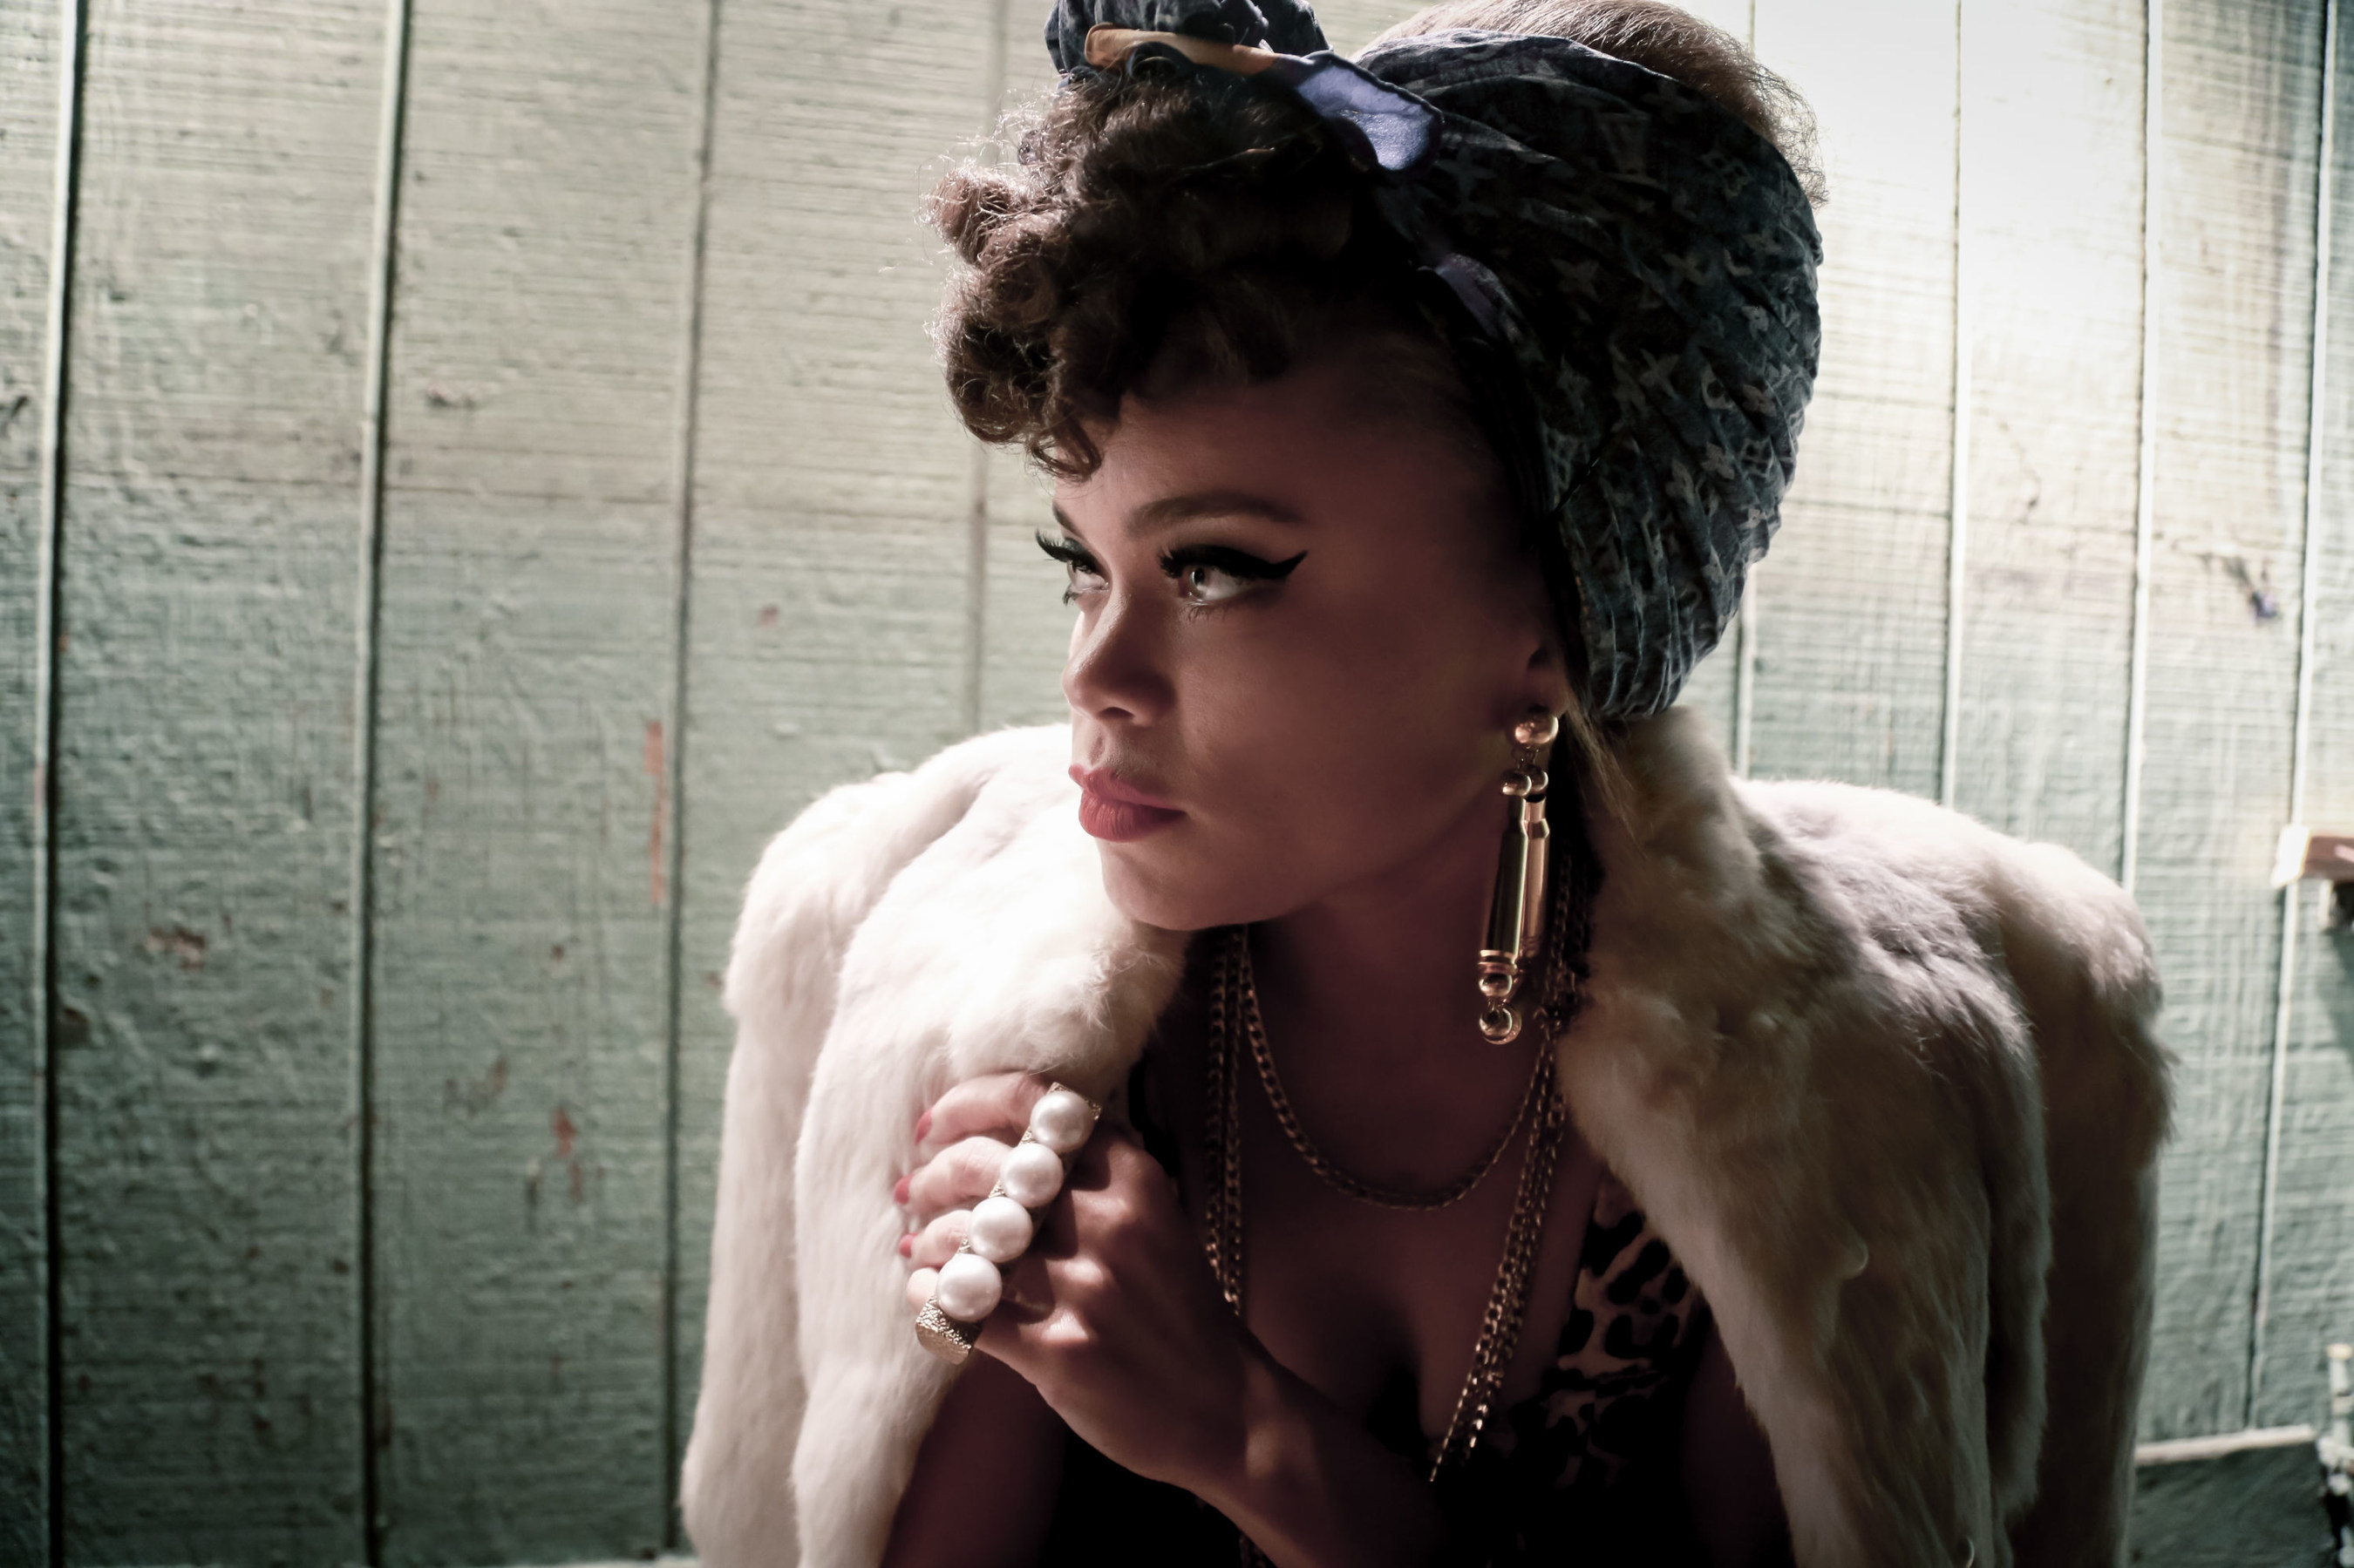 Warner Bros. Records Artist Andra Day to Headline Thurgood Marshall College Fund's 27th Annual Awards Gala